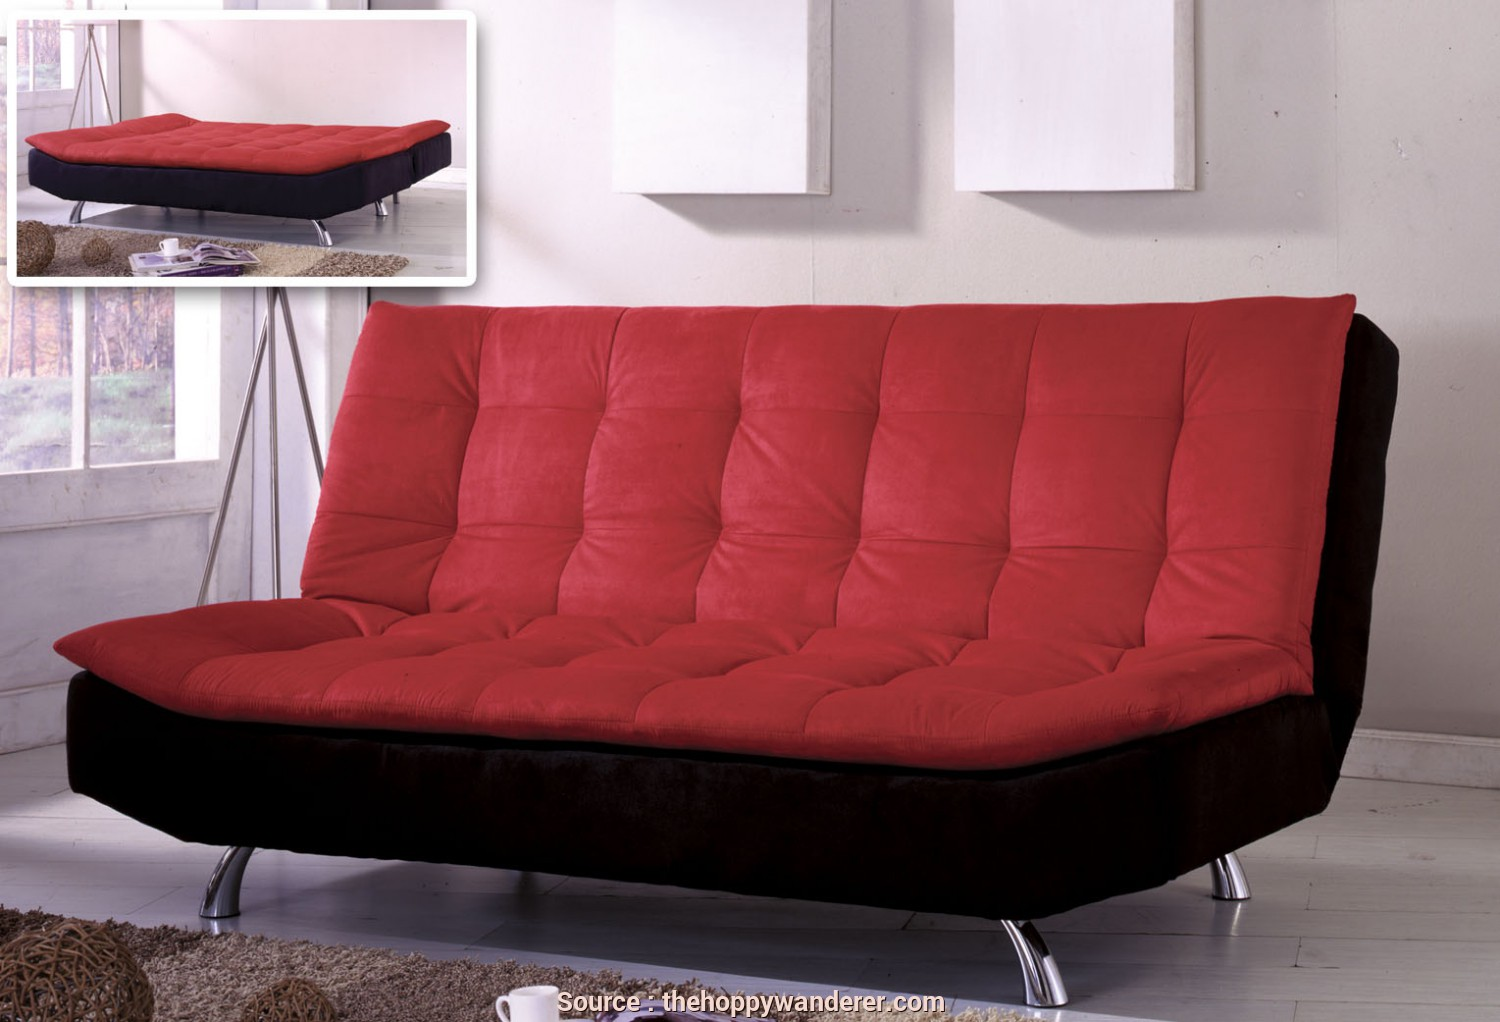 Futon Ikea Japan, Locale Sofa: Make Your Home Look Neat, Cozy With Futons At Ikea